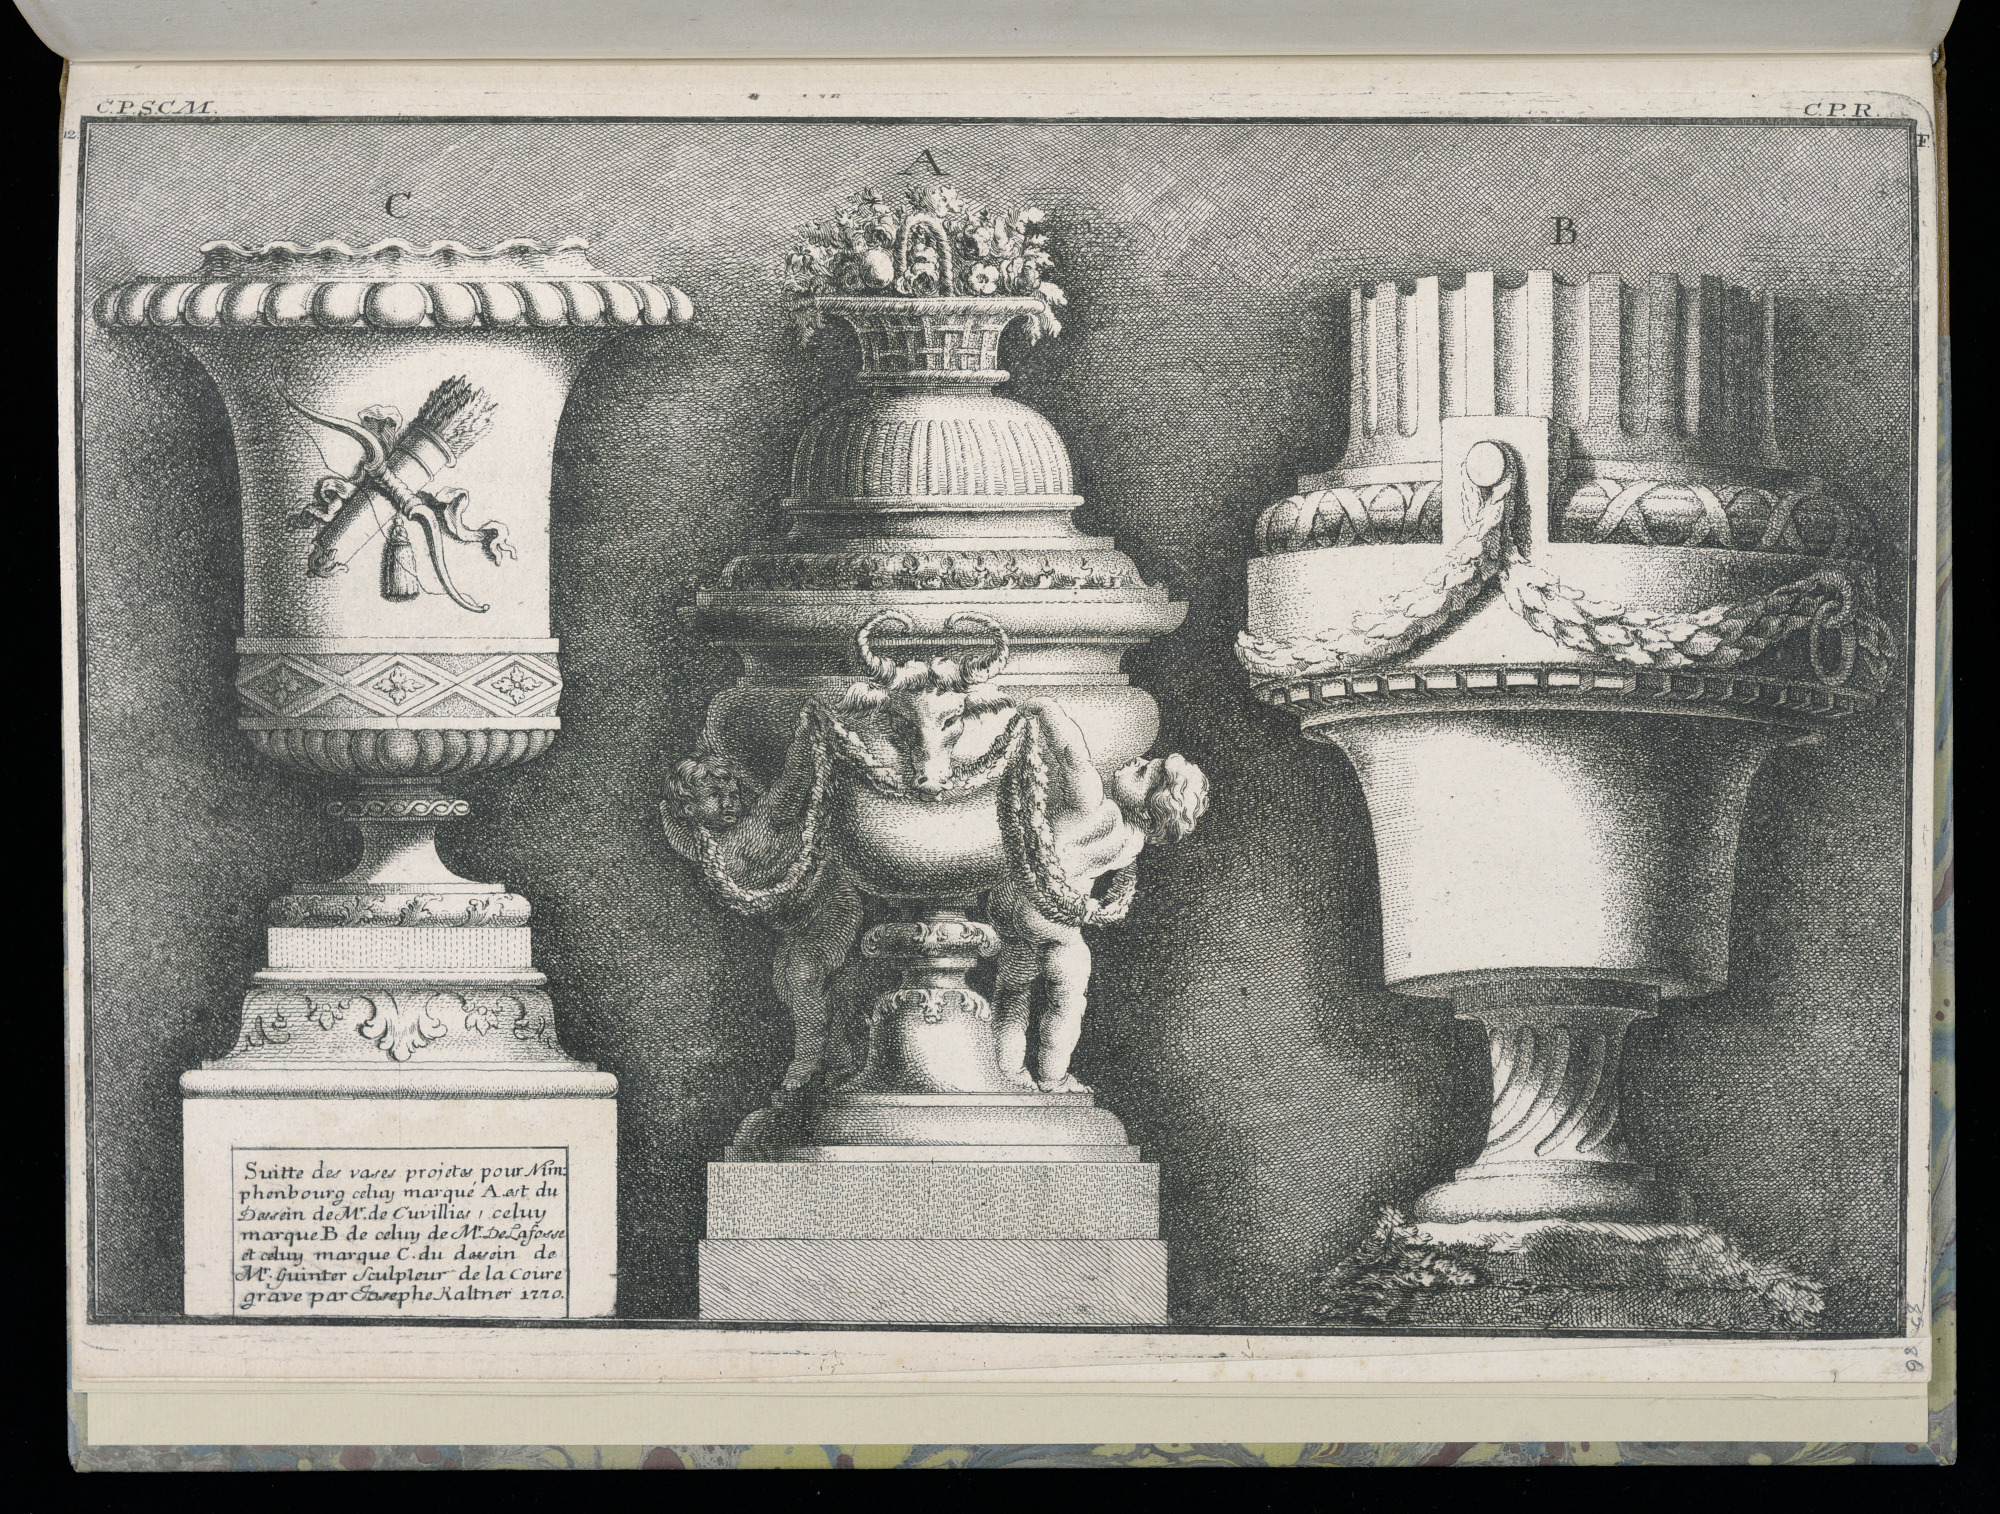 Three Vases, Suitte de vases projetes pour Nimphenbourg (Set of Vases Designed for Nymphenburg)